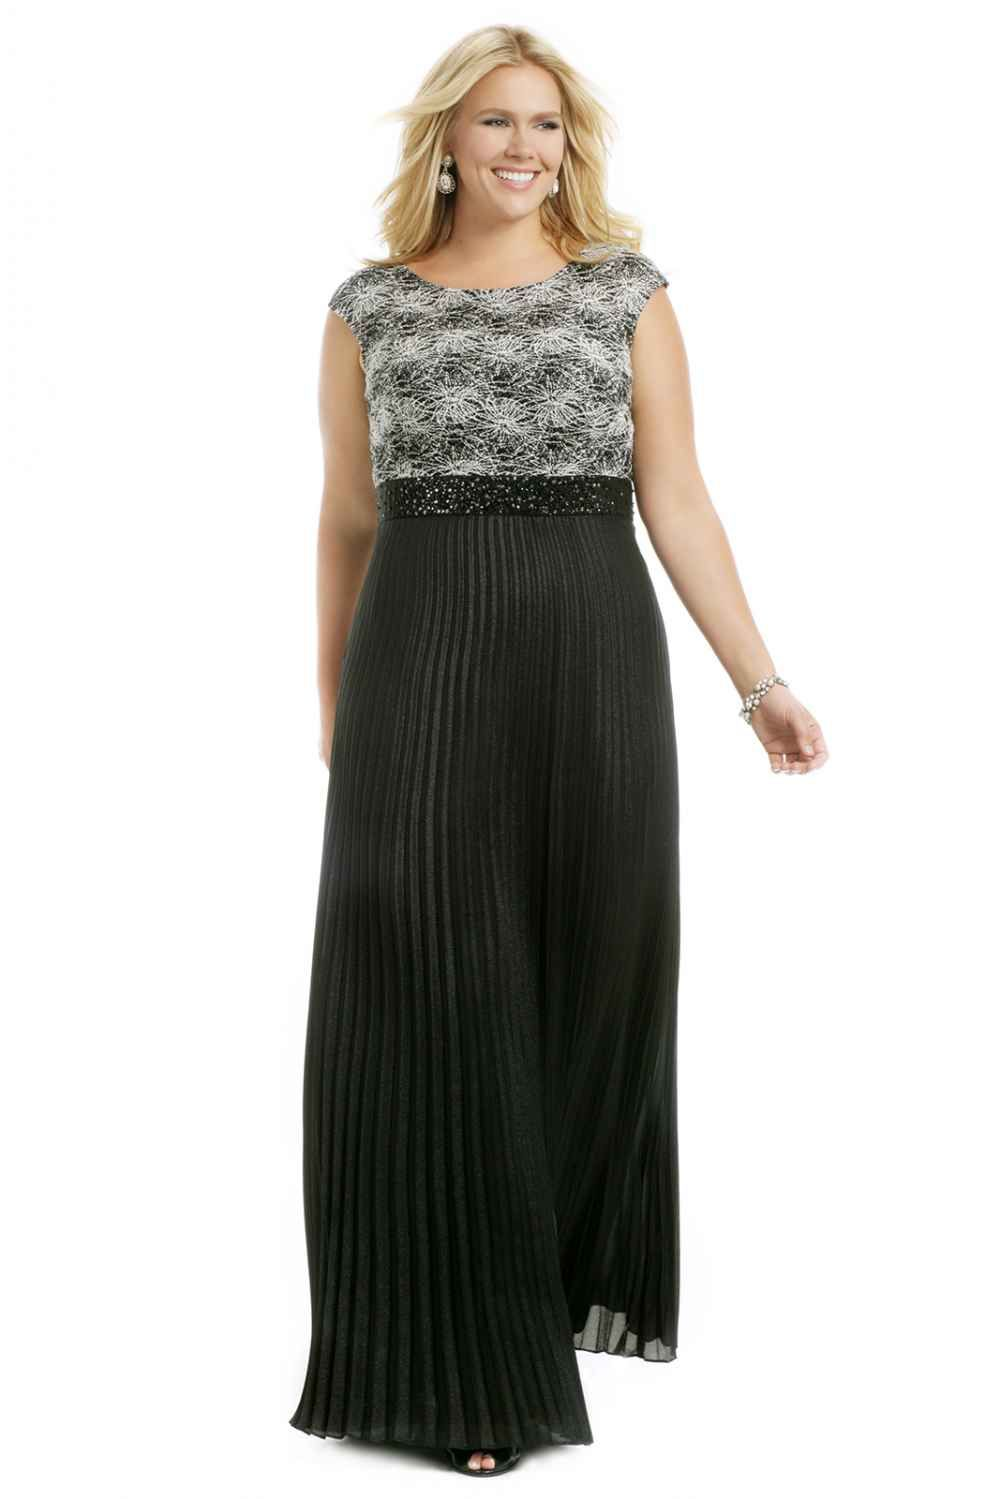 Rent The Runway Plus Size - Formal Wear For Curvy Women | Renting ...